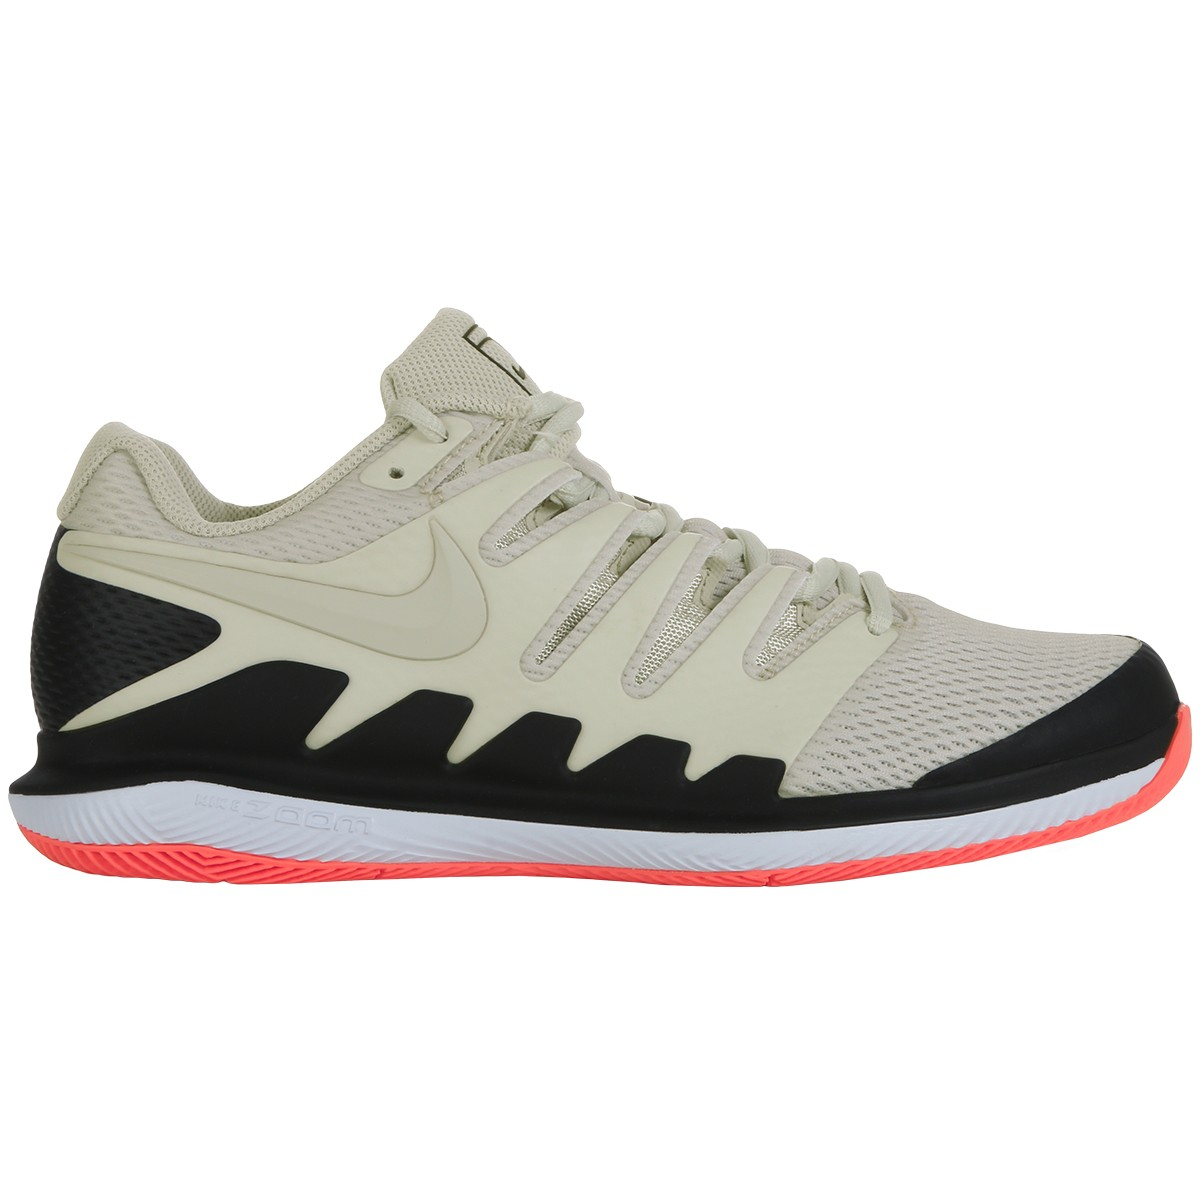 CHAUSSURES NIKE AIR ZOOM VAPOR 10 TOUTES SURFACES NIKE